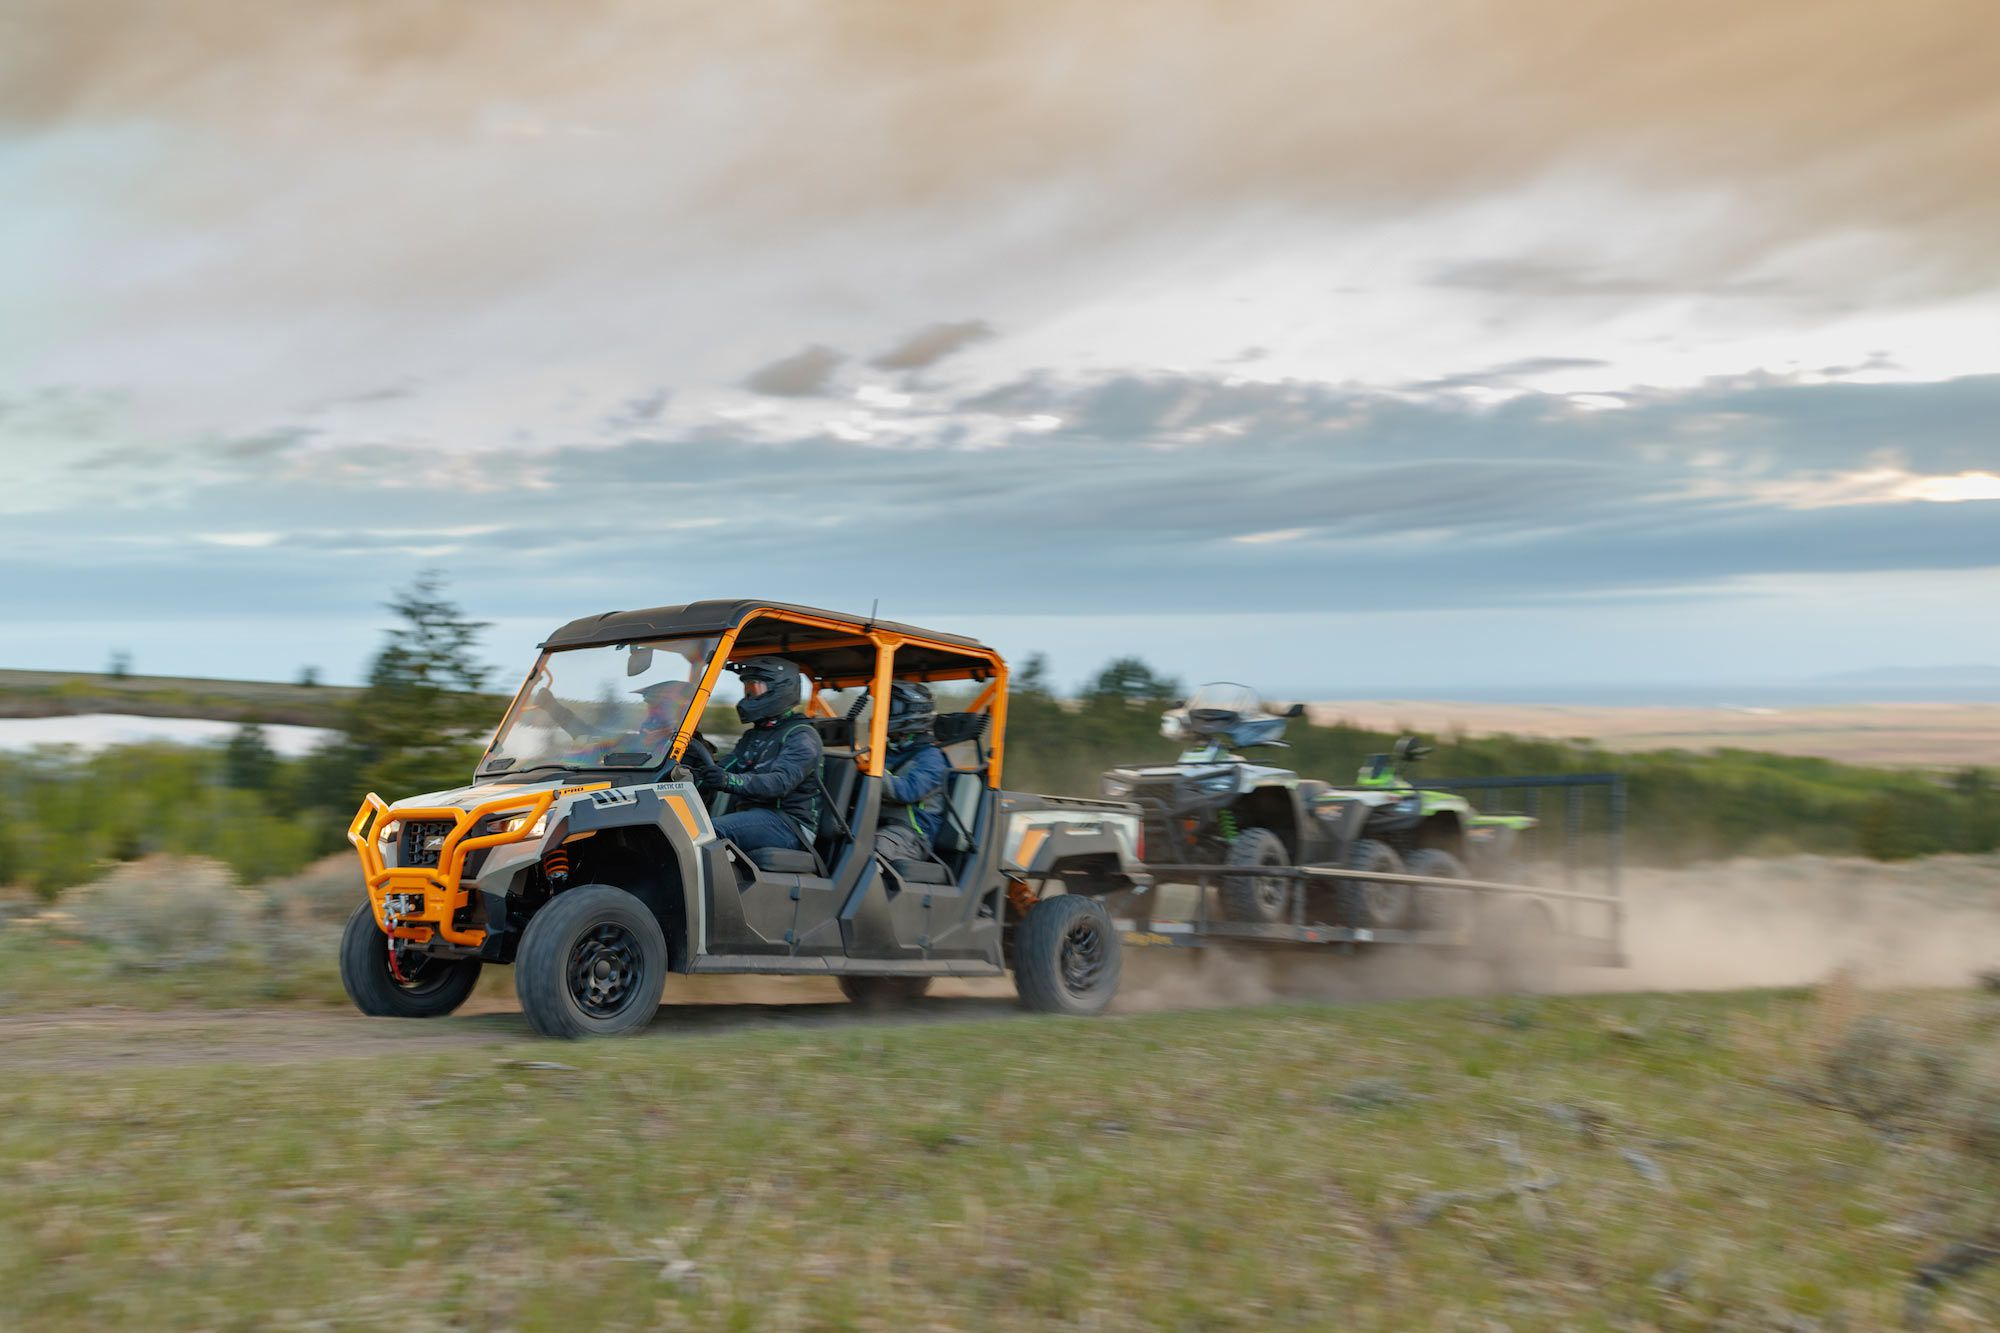 2022 Arctic Cat Prowler Pro Crew six-seater utility side-by-sides pulling a trailer.